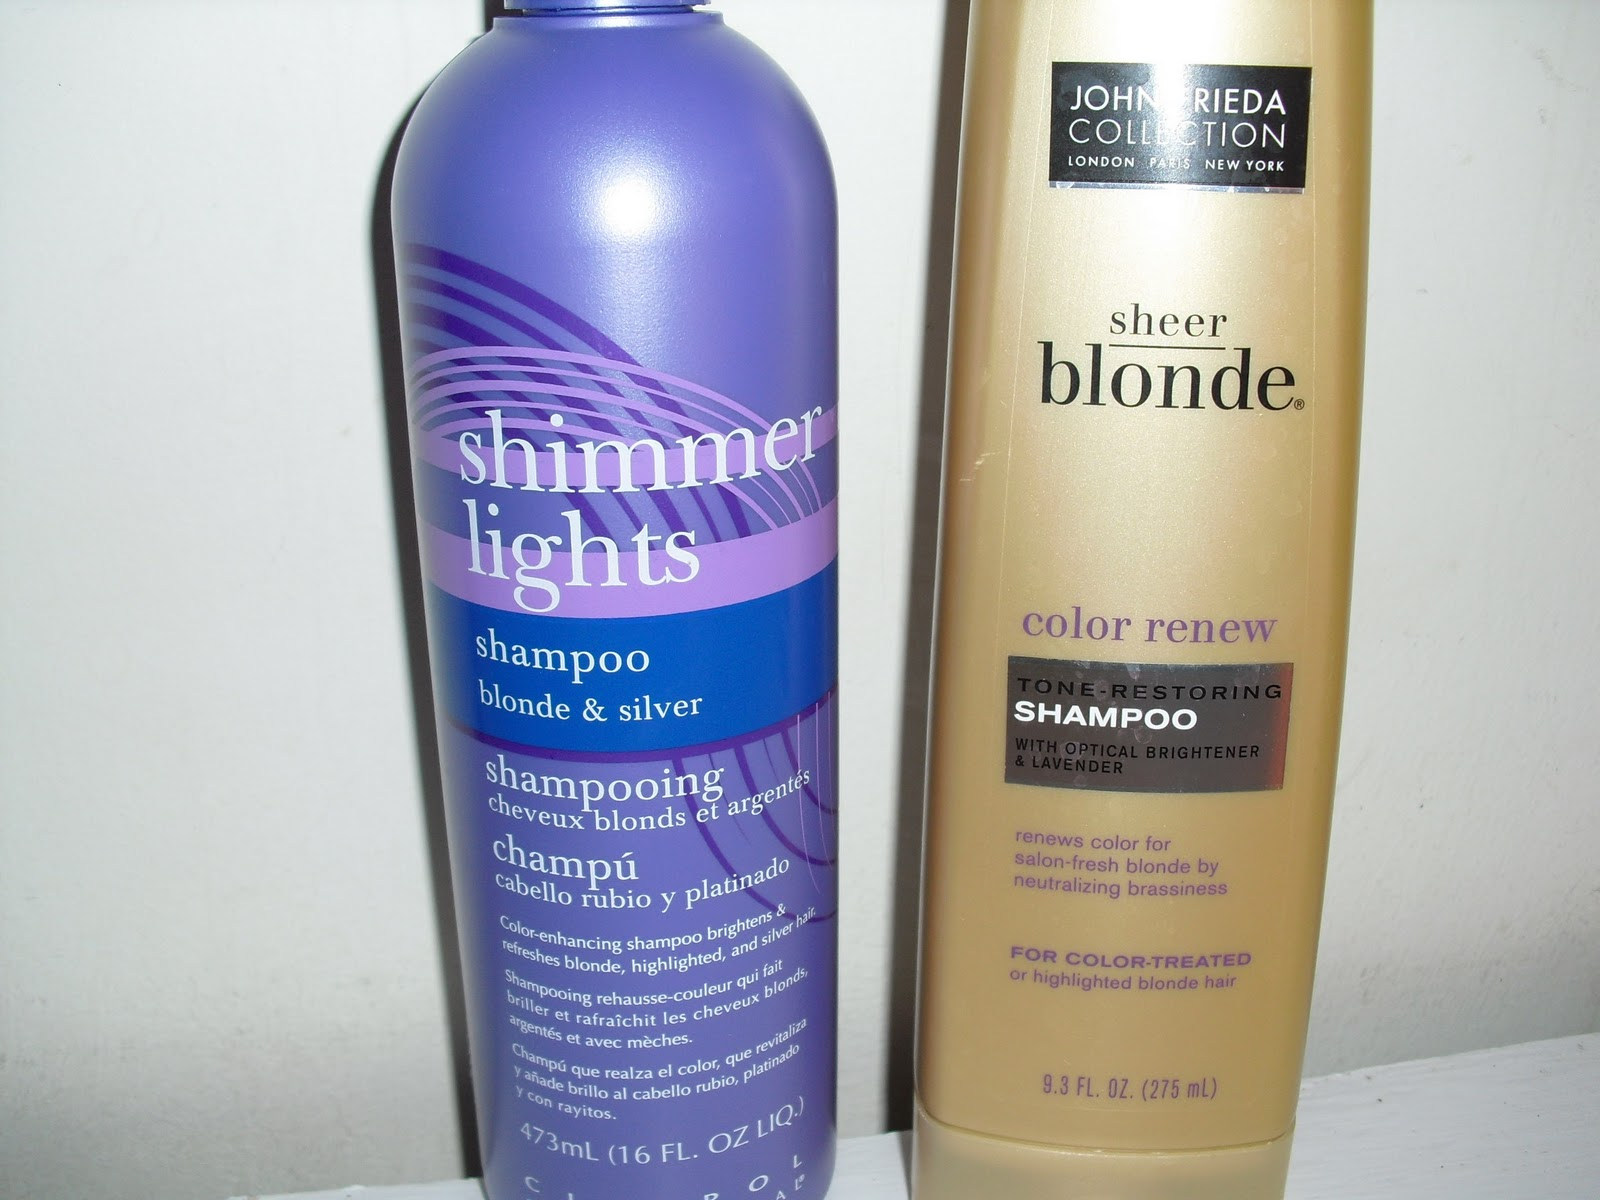 light shampoo lights blonde shimmering com sleekshop clairol shimmer silver products